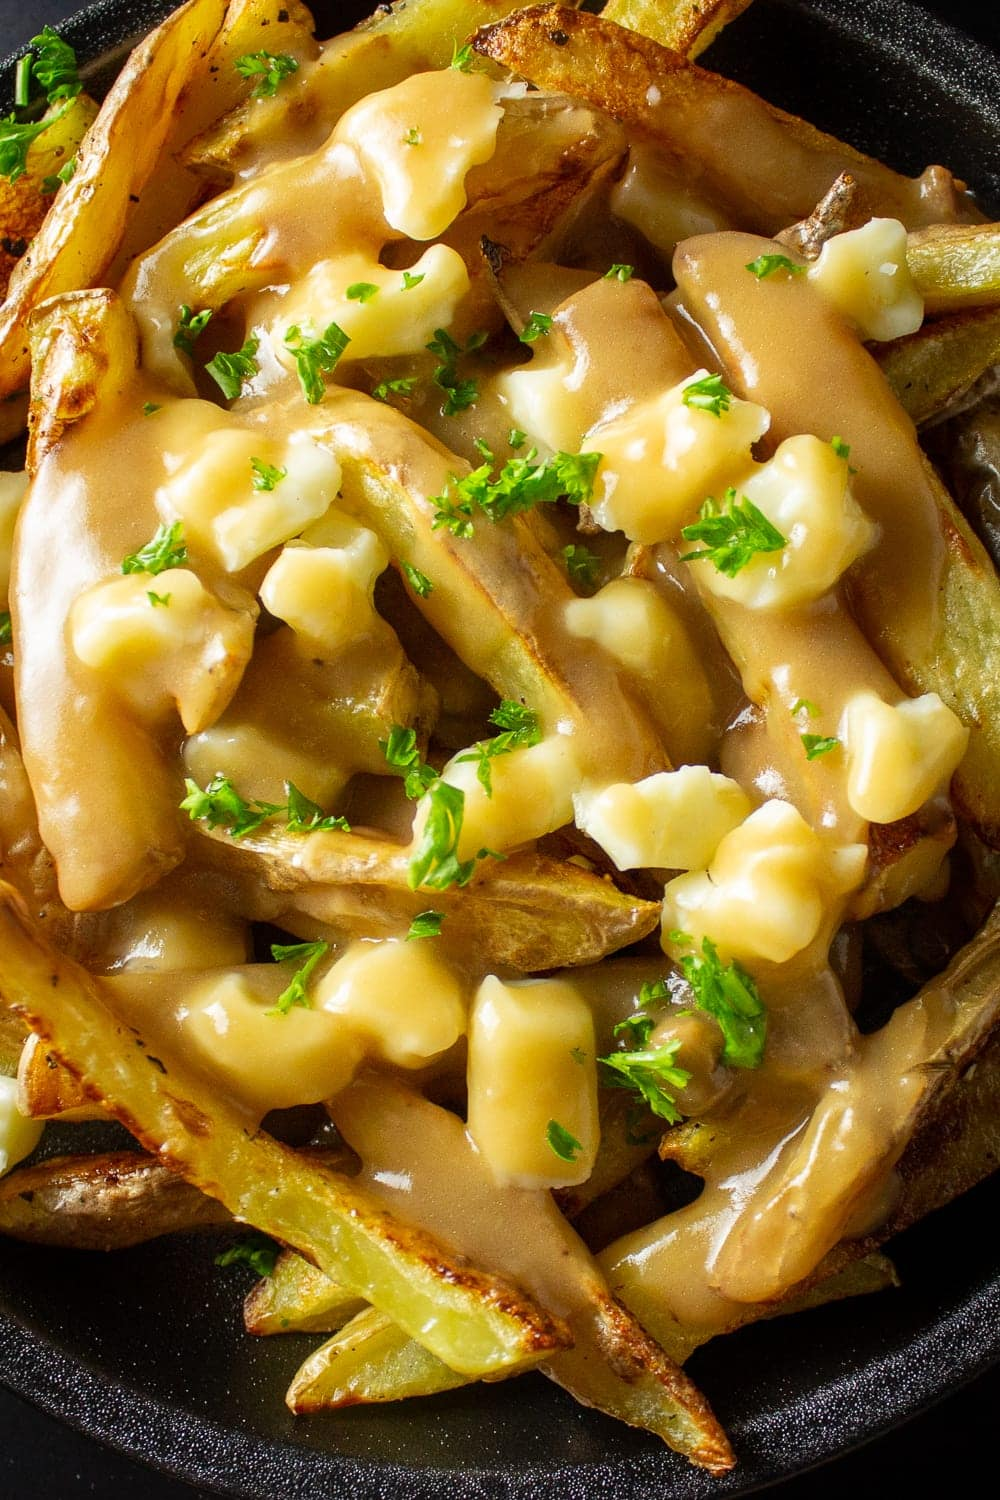 poutine on plate p2